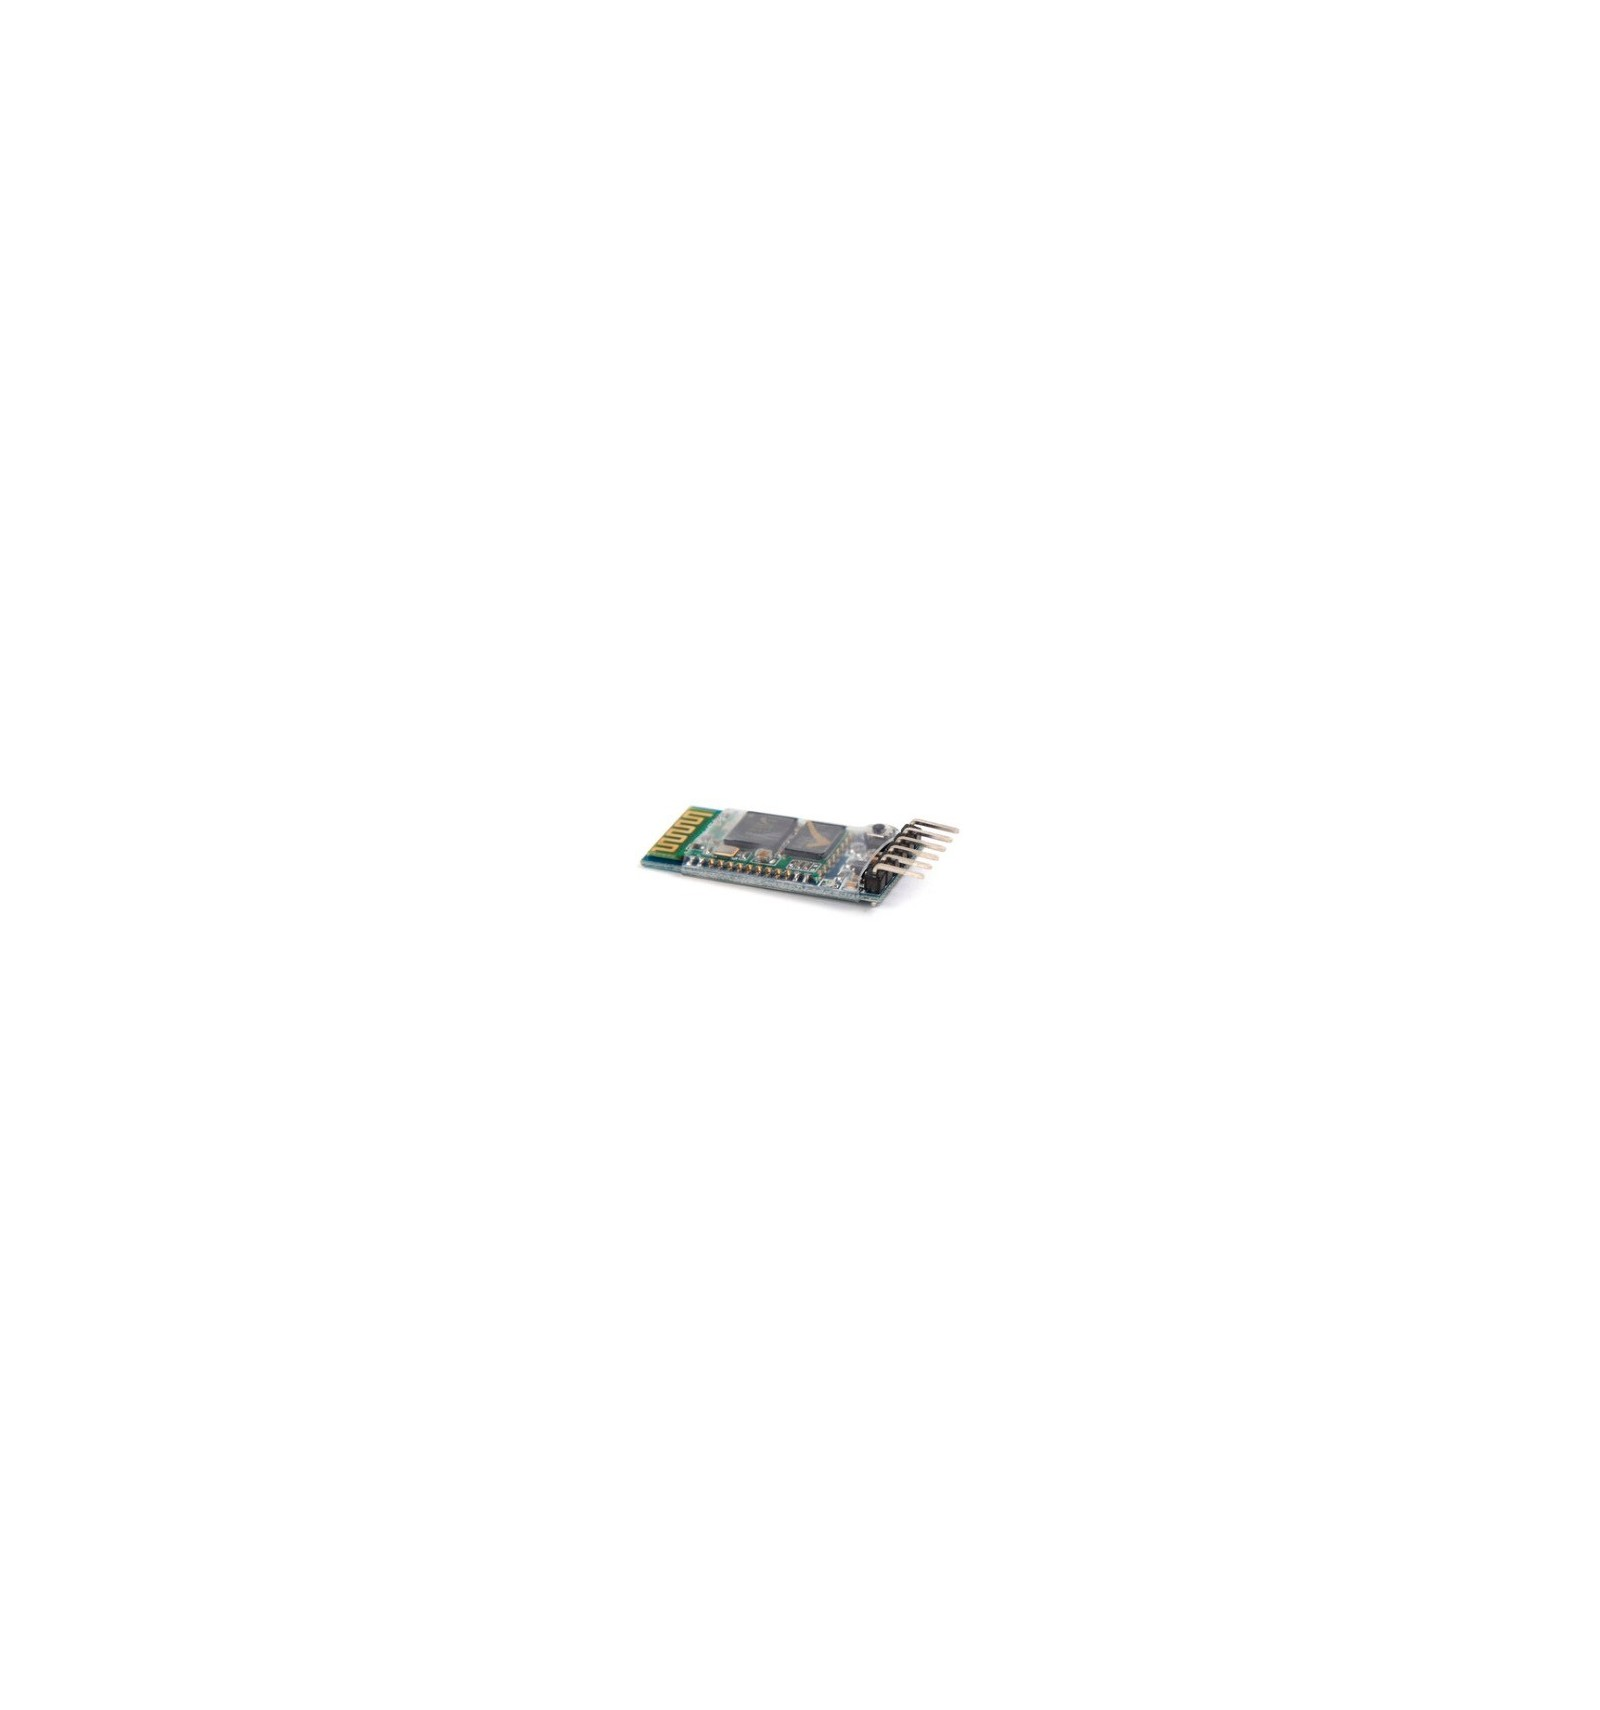 Hc bluetooth to serial module arduino compatible